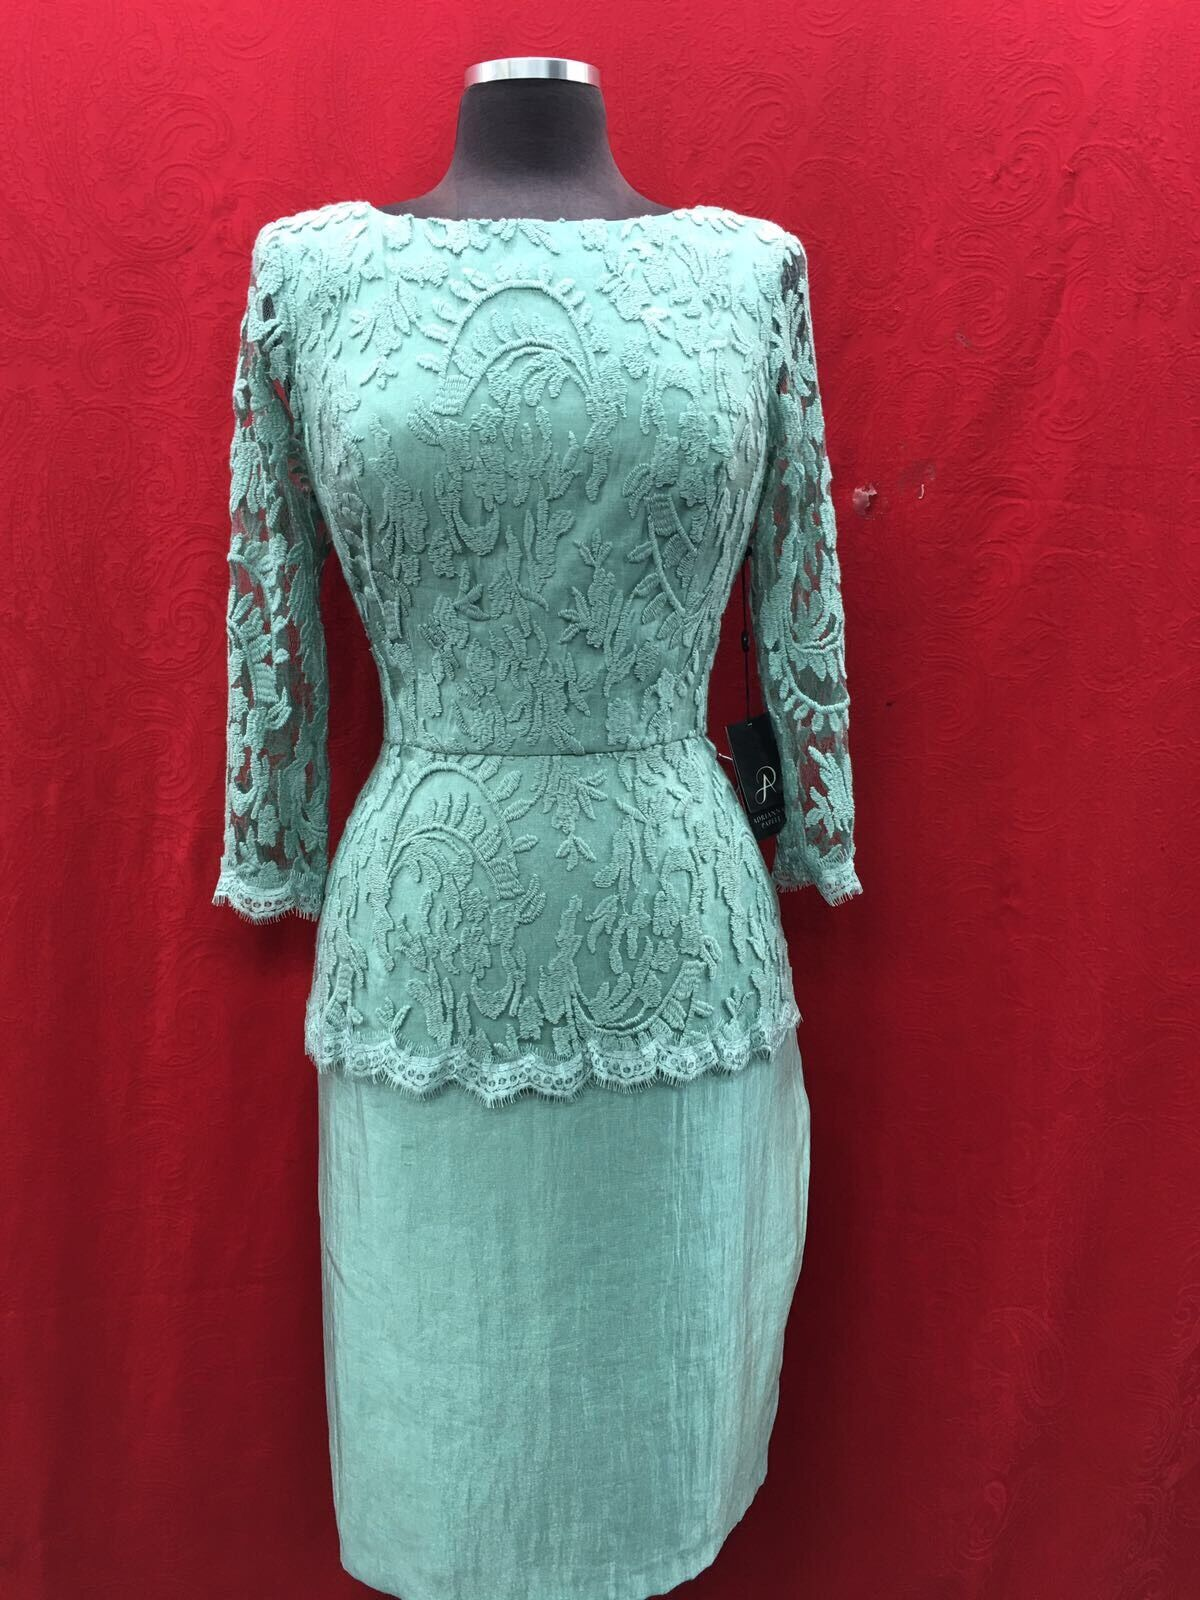 SIMPLY BY LILIANA DRESS  NEW WITH TAG SIZE 12 RETAIL  GREEN LENGTH 39